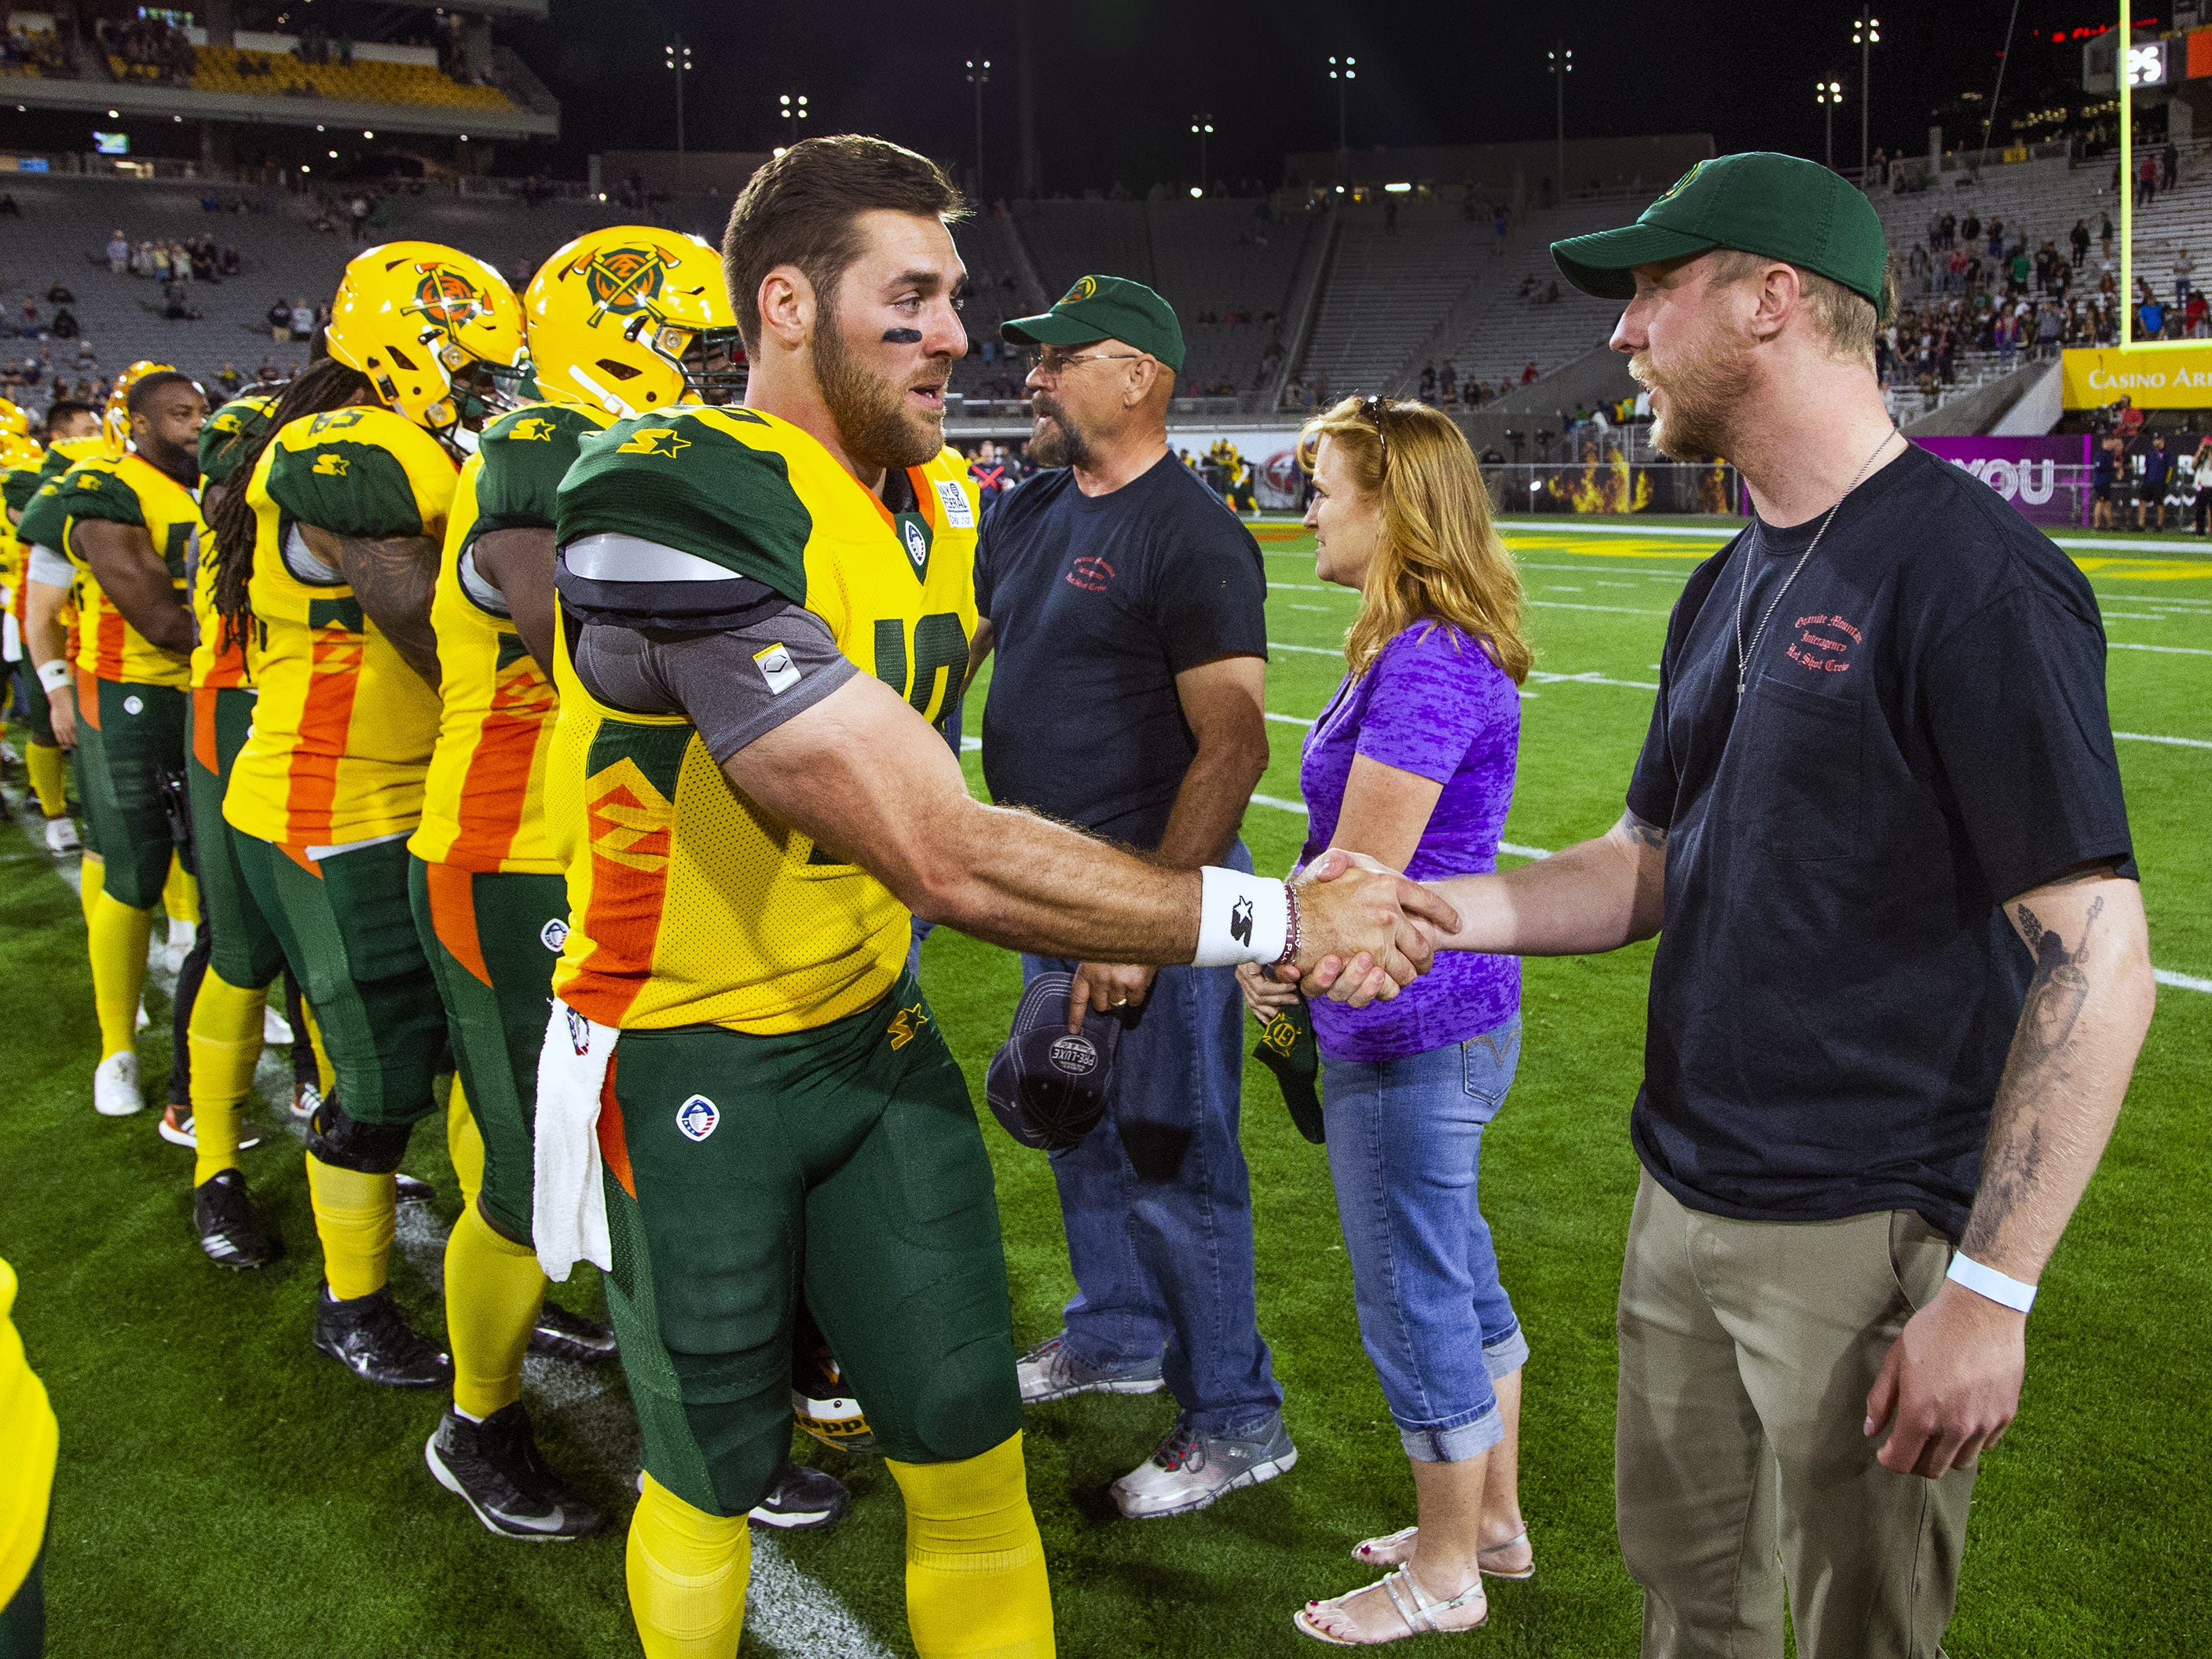 Brendan McDonough, the lone-surviving member of the Granite Mountain Hotshots, is greeted by quarterback Trevor Knight and other members of the Arizona Hotshots team after being honored along with family members of the crew at halftime of the Arizona Hotshots and Atlanta Legends football game at Sun Devil Stadium, Sunday, March 3, 2019.  A giant banner was unfurled, retiring the number 19 in honor of the fallen firefighters.